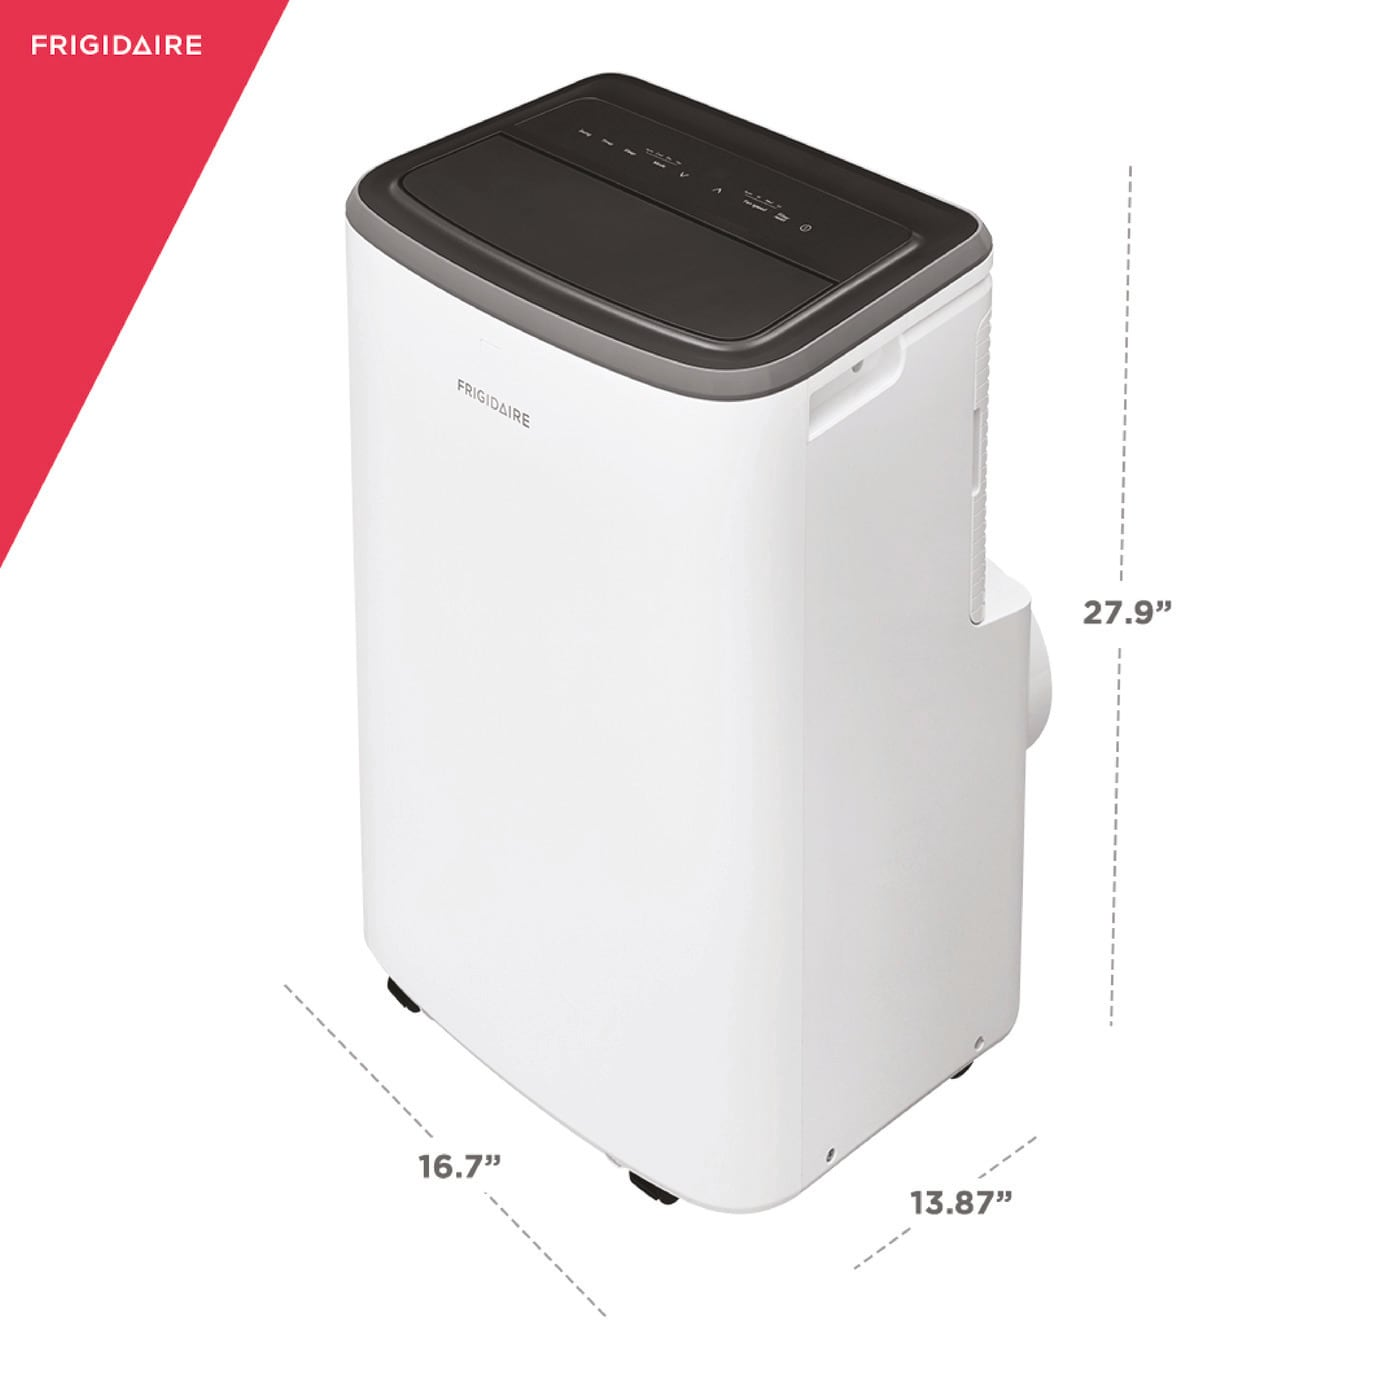 10,000 BTU Portable Room Air Conditioner with Dehumidifier Mode White FHPC102AB1